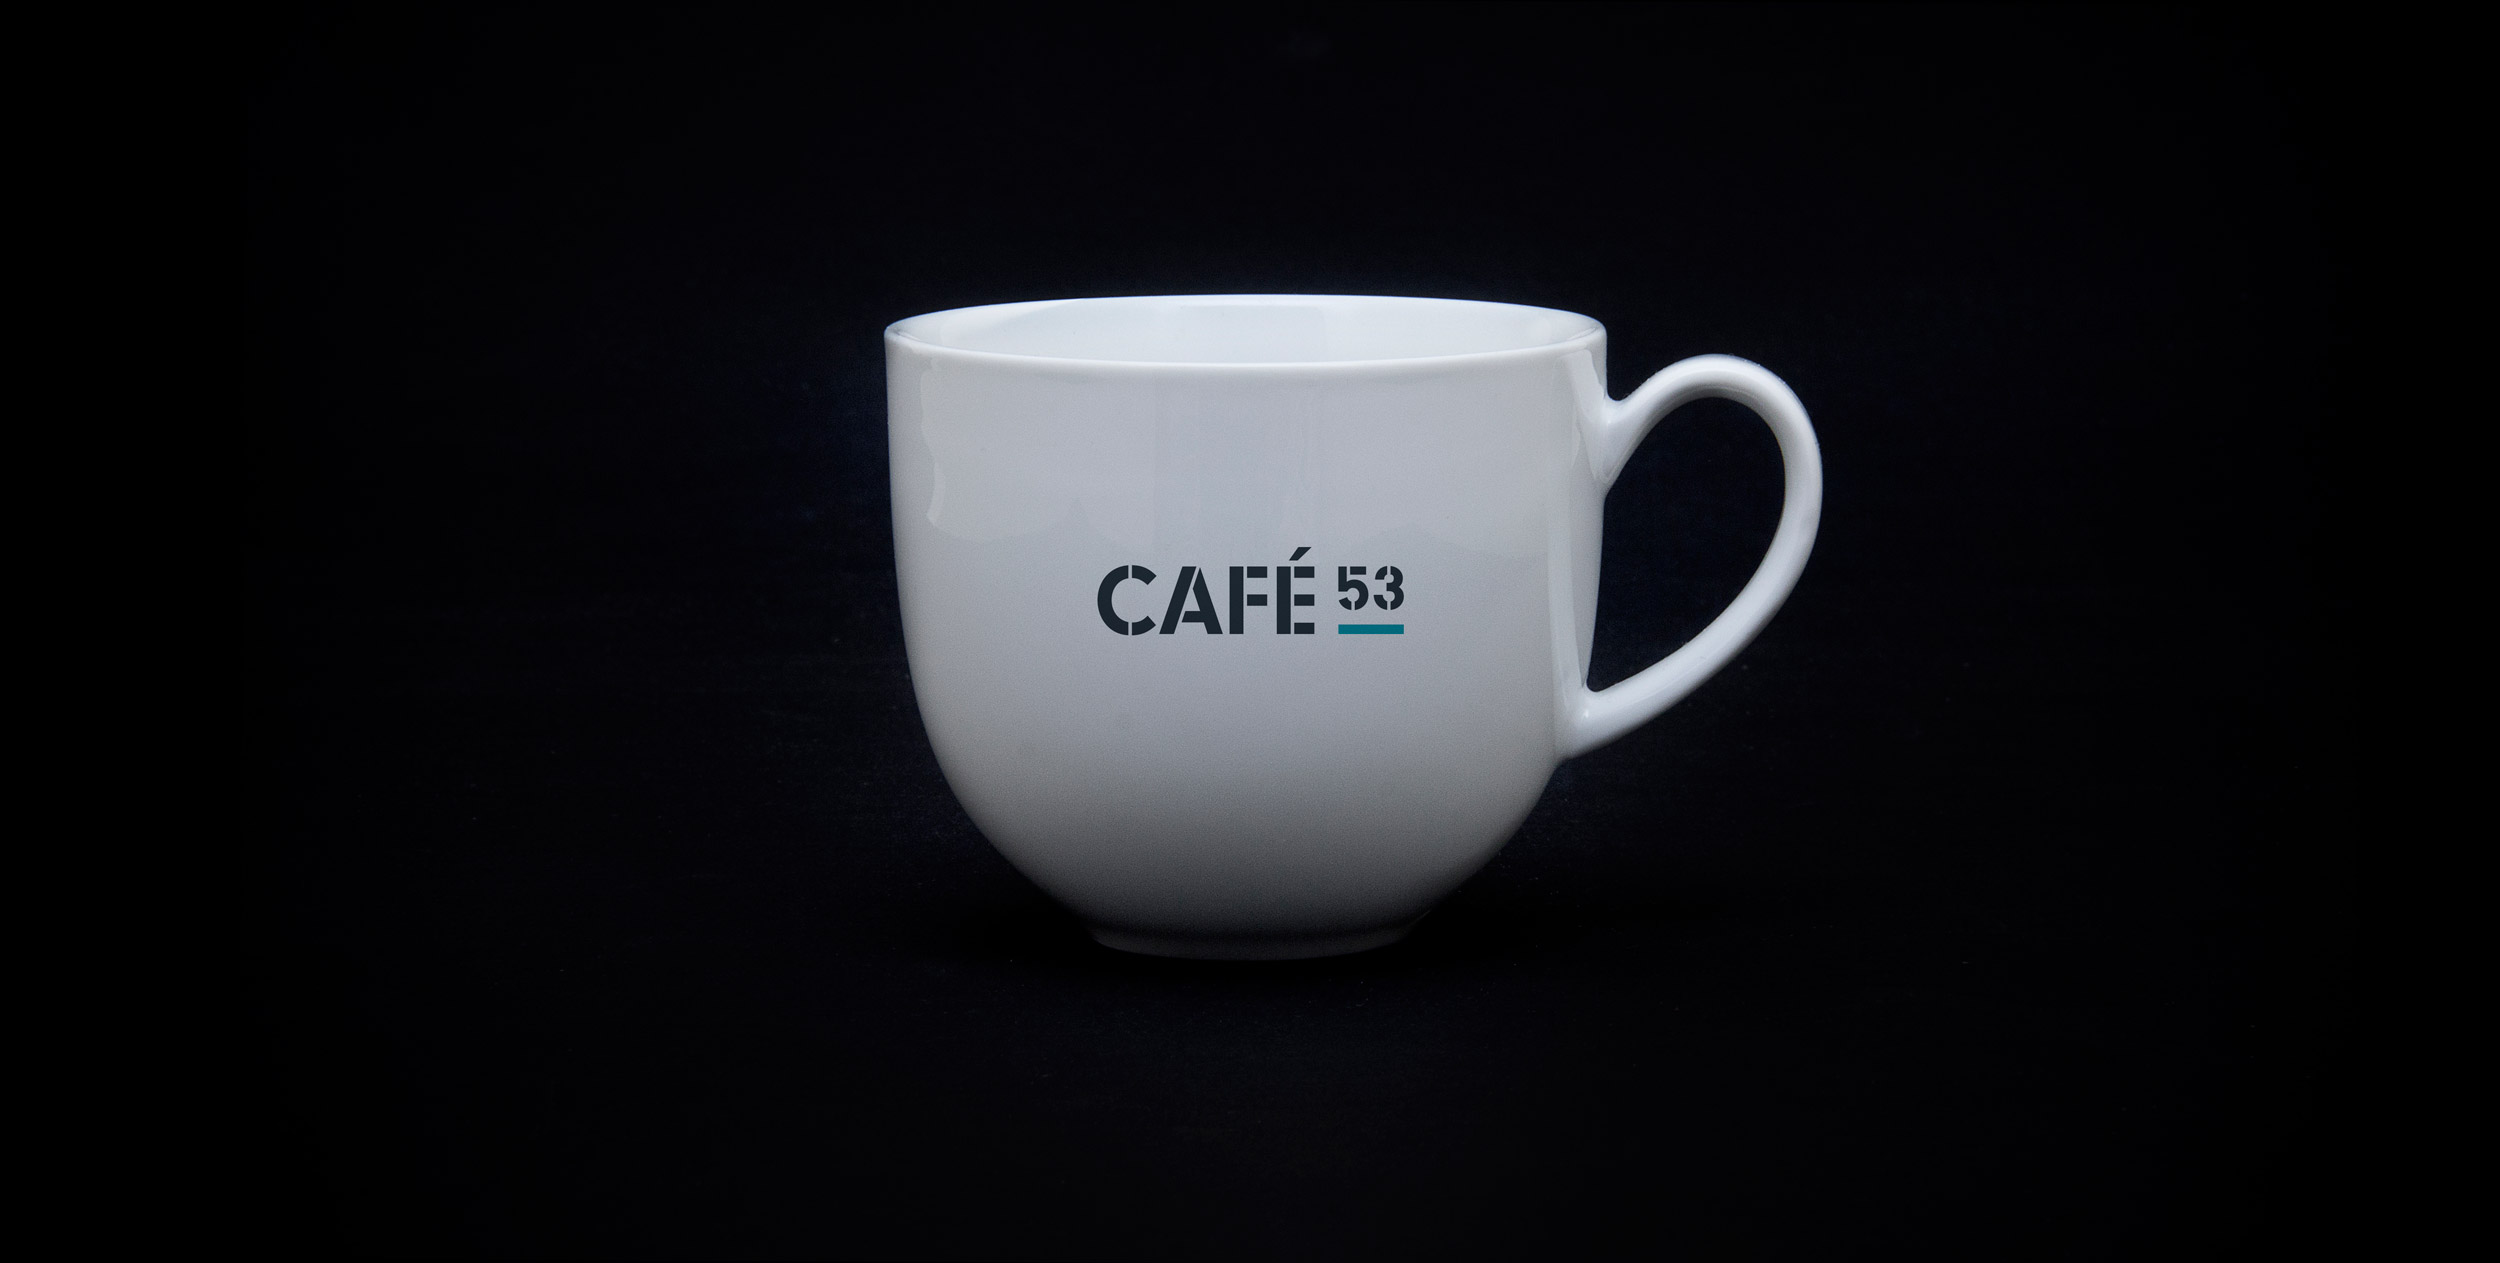 Flight Deck 53 cafe branding – Design by Ian Whalley